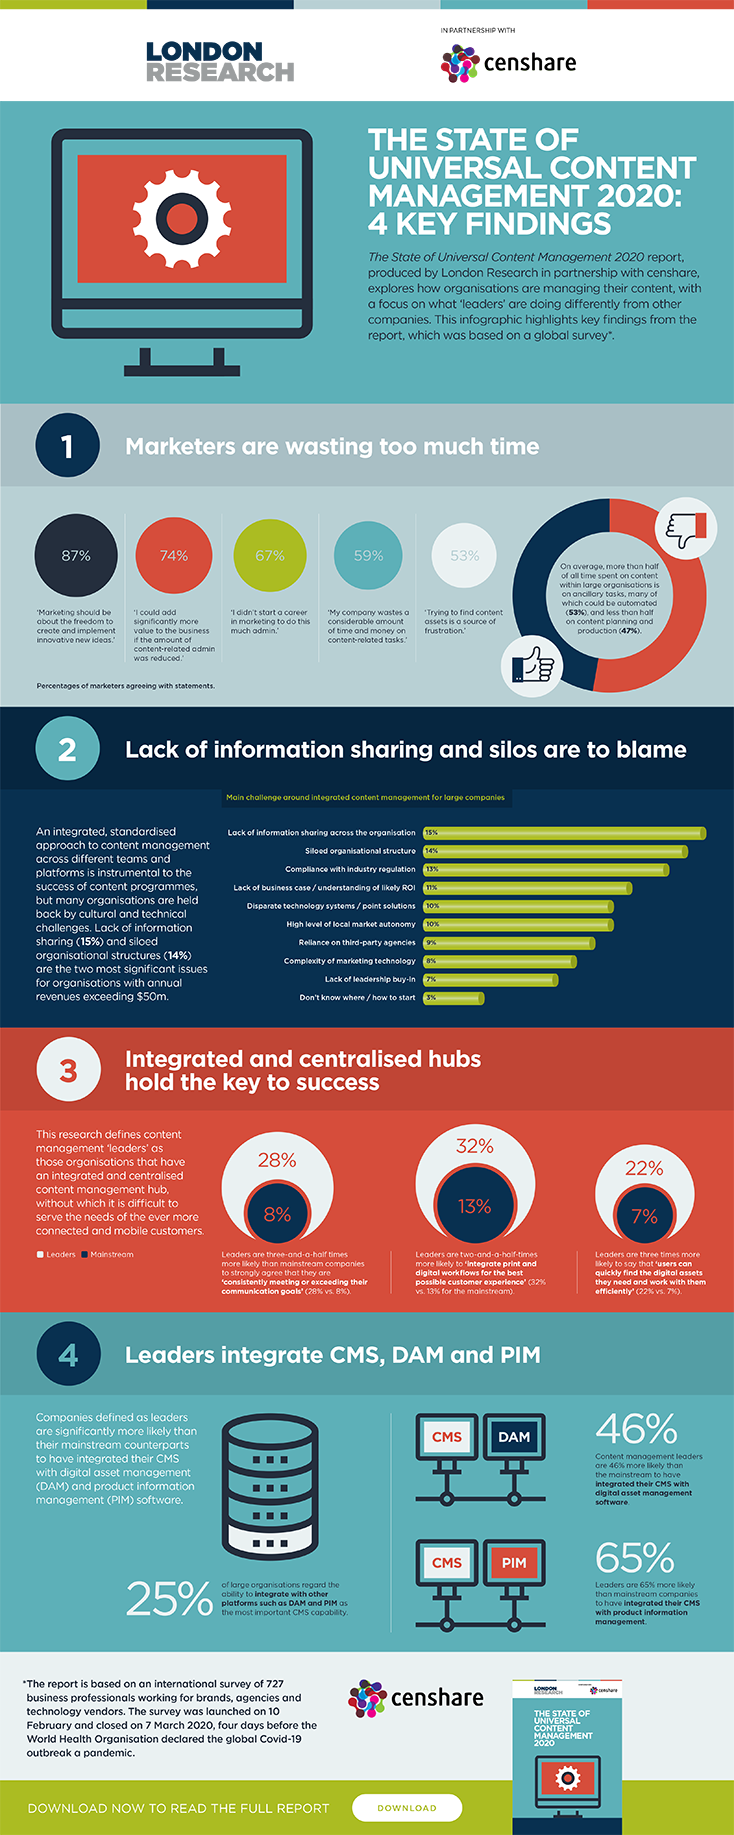 London-Research-censhare-State-of-Universal-Content-Management-Infographic_734.png